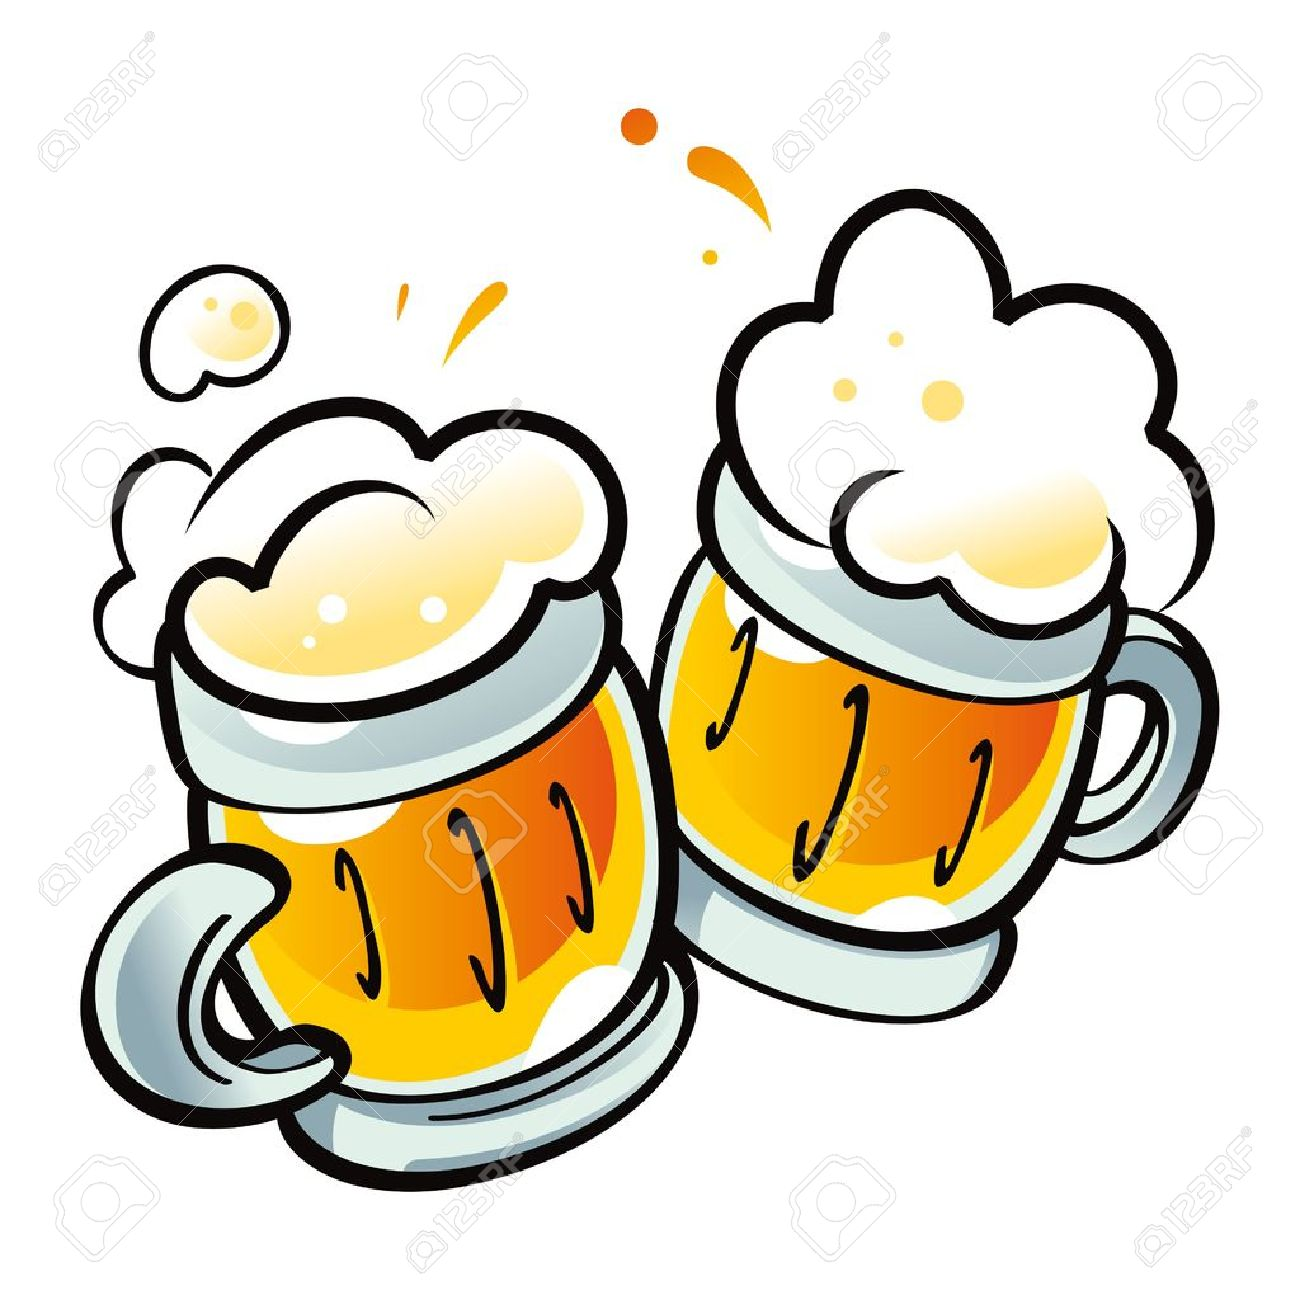 hight resolution of 1300x1300 beer clipart 2167069